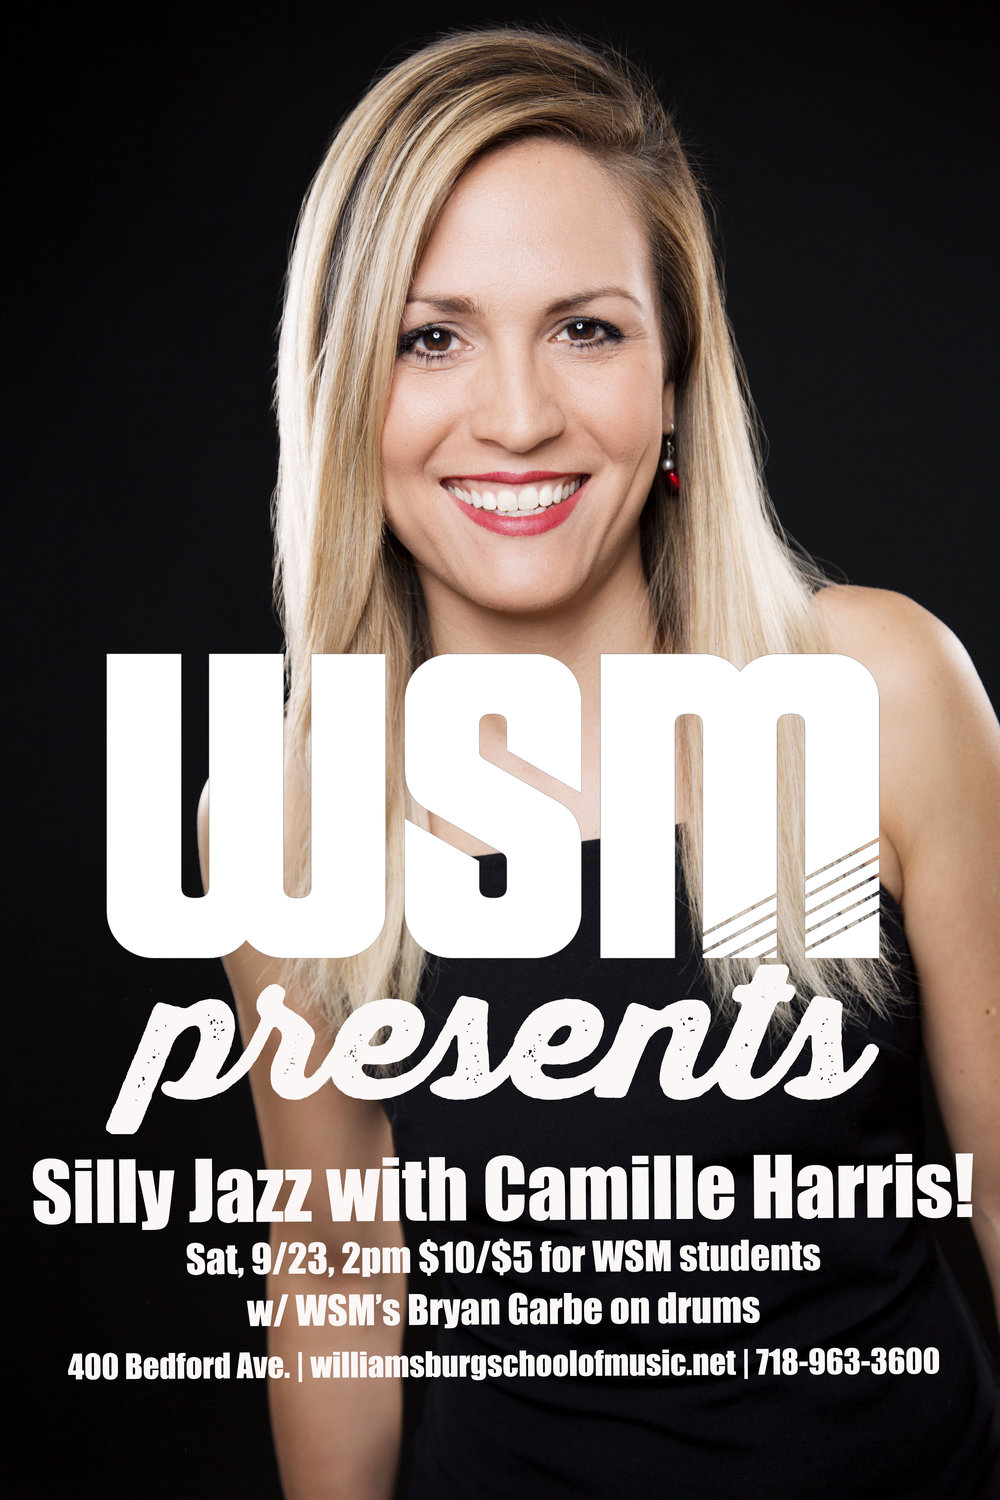 We are kicking off a monthly concert series on September 23rd at 2pm with our own Camille Harris, who will be playing selections from her kid/family-friendly album Silly Jazz.  Get ready to stomp, clap and dance around!  Featuring WSM's Bryan Garbe on drums.  All ages.  Tickets are $5 for students and families of students, $10 for the general public.  See you there!